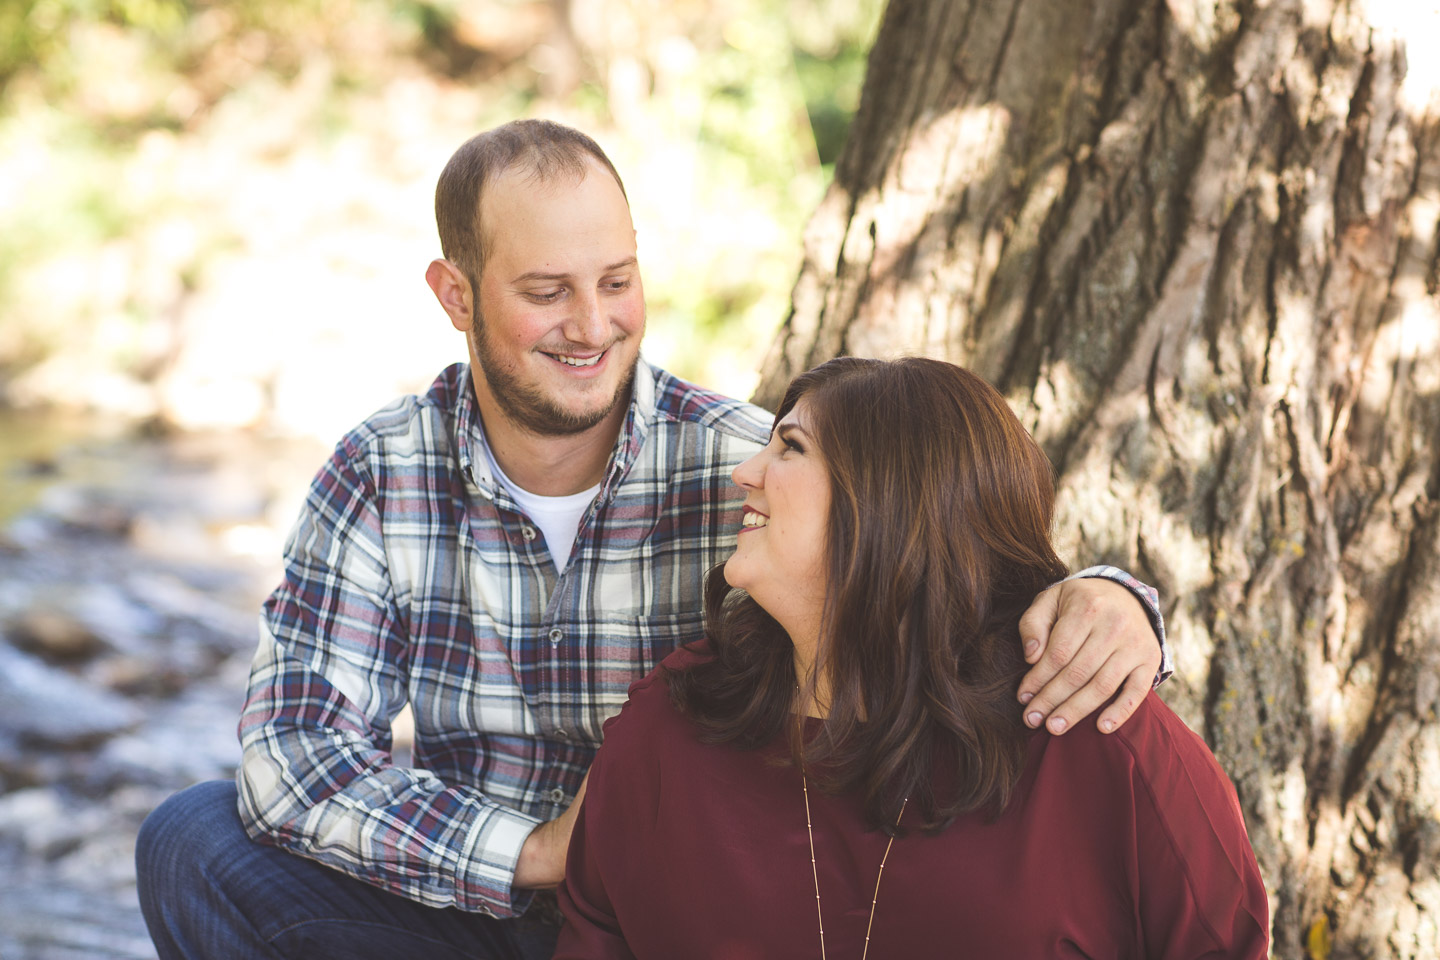 Engagement-Northville-Mill-Race-Village-David-Danielle-Sitting-At-Creek-River